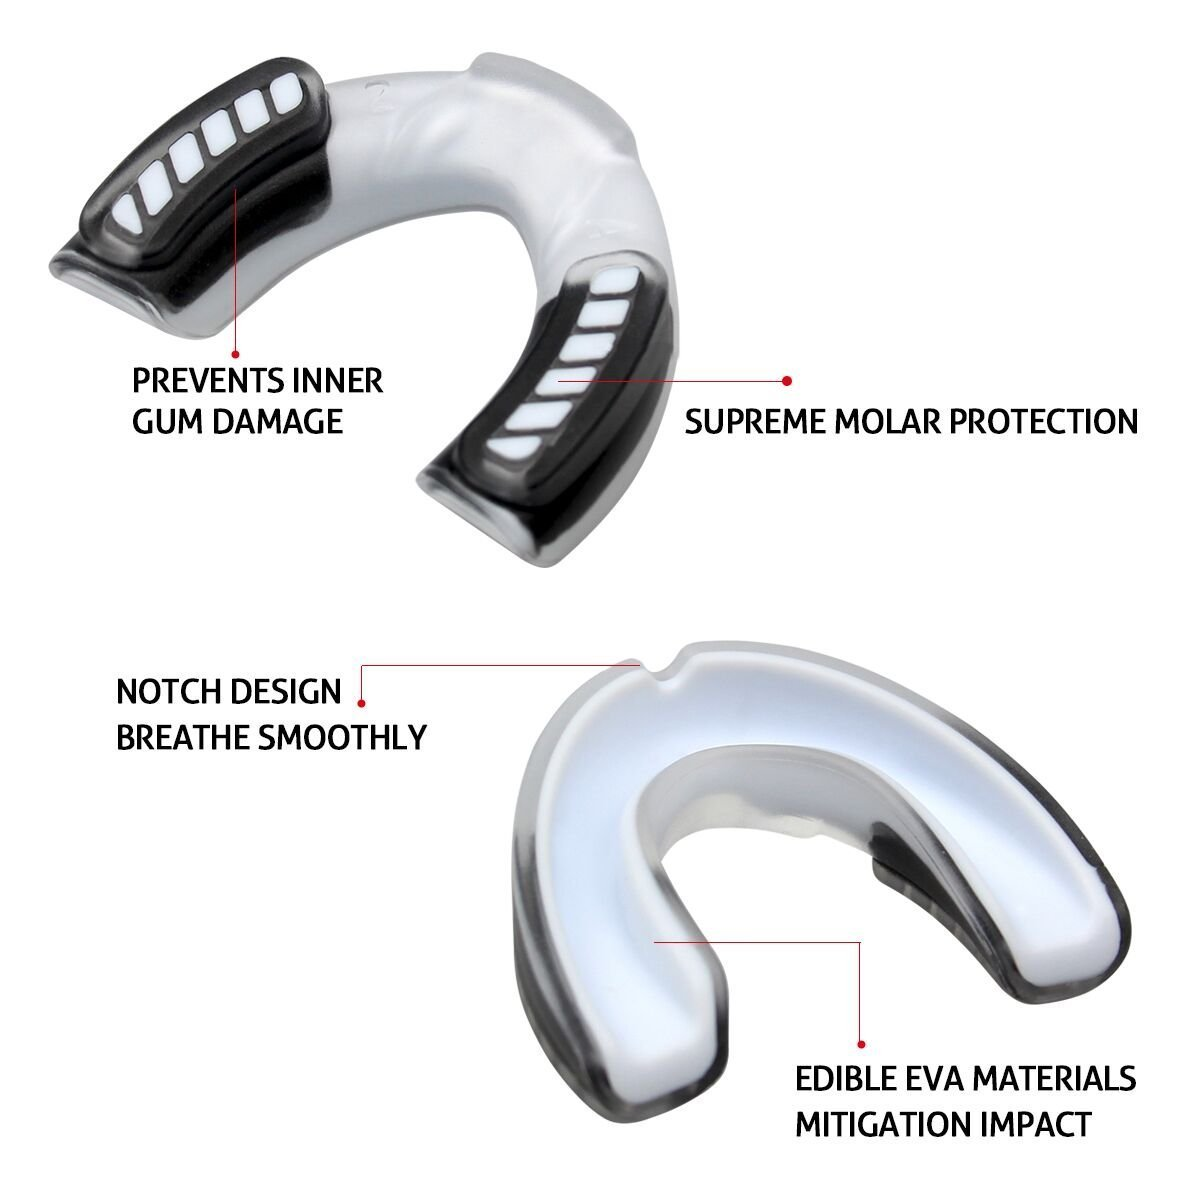 RUNFON Mouthguard/ Vented Case,Adult Gum Shield for Contact Sports Rugby,Boxing,MMA,Hockey,Football,Basketball,Martial Art,Karate,Judo